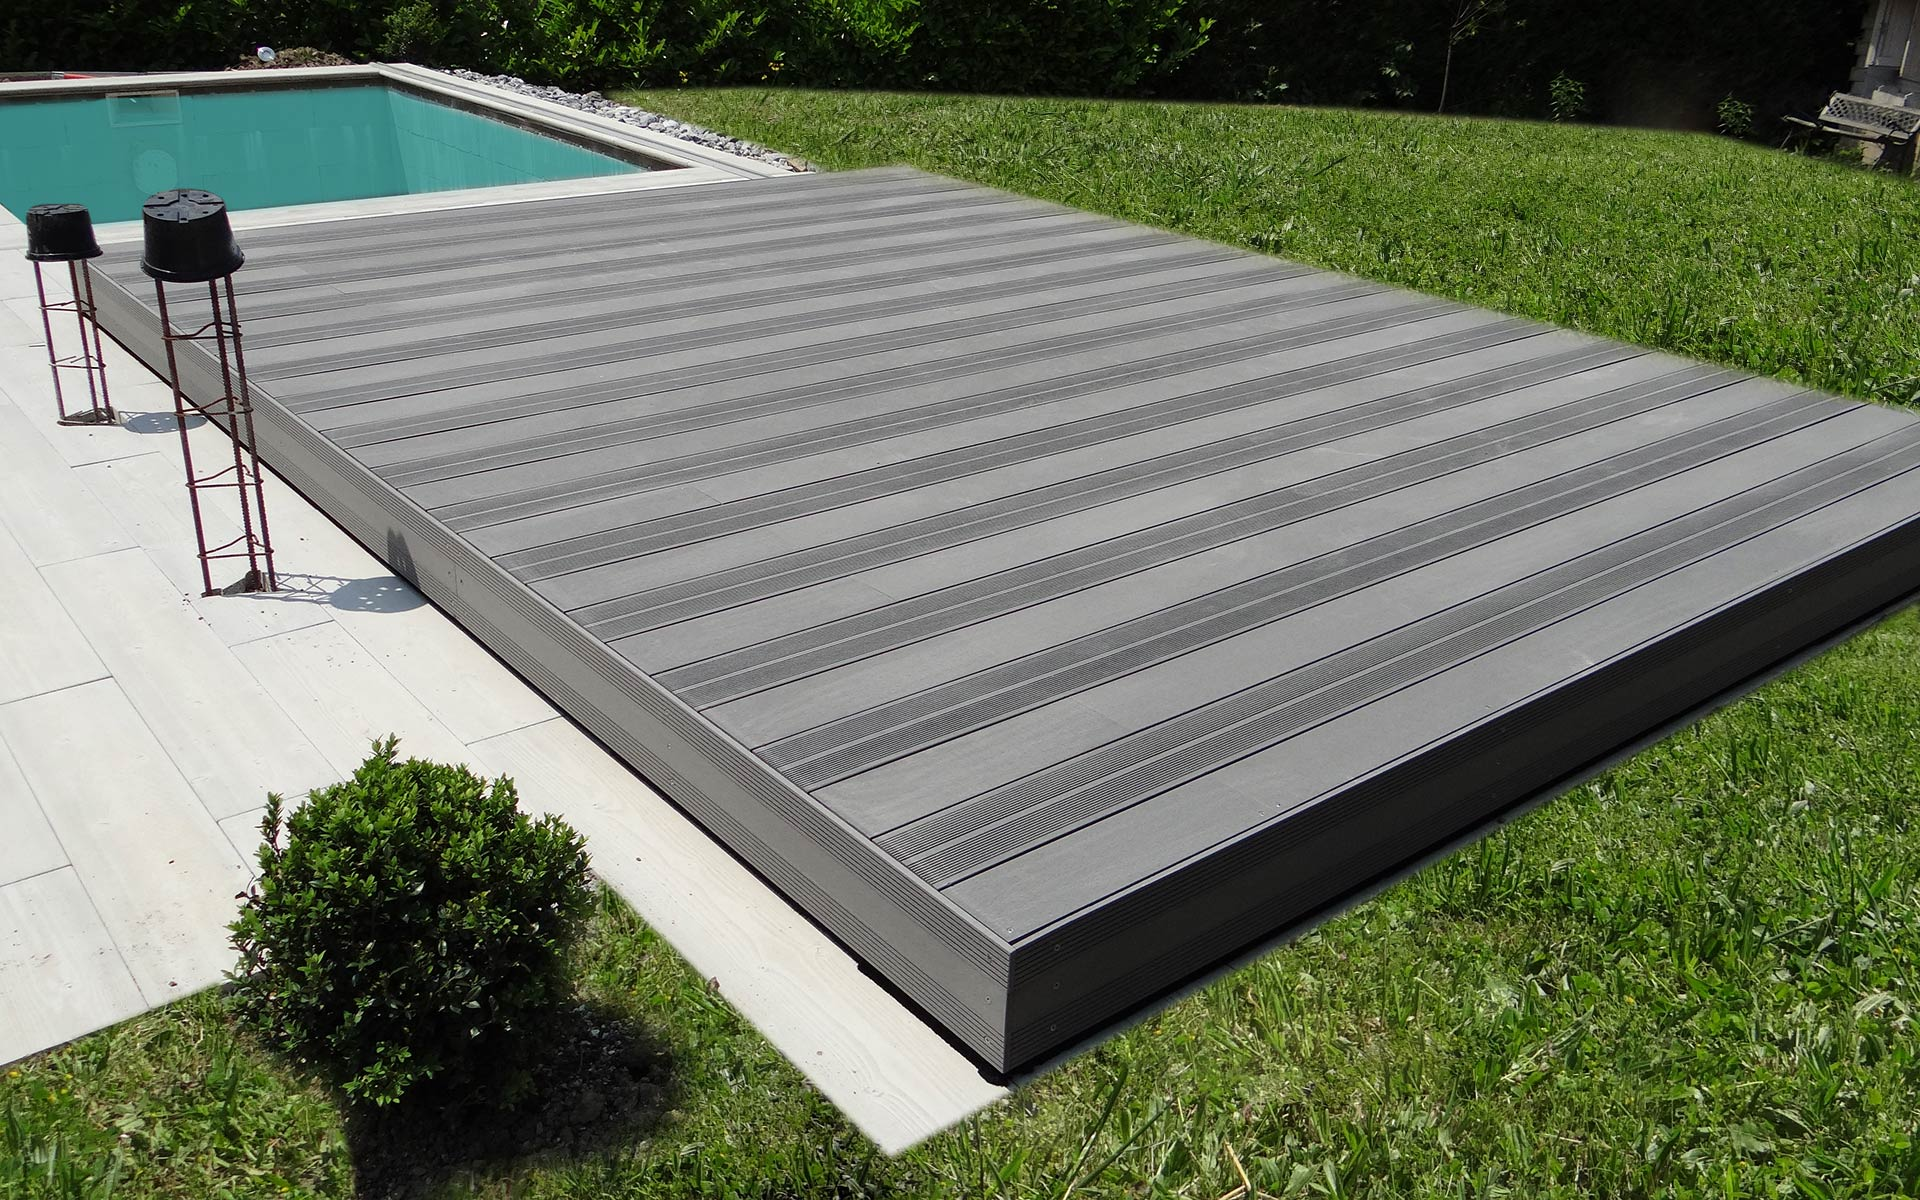 Terrasse mobile s curit piscine informations propos s for Piscine fond mobile tarif